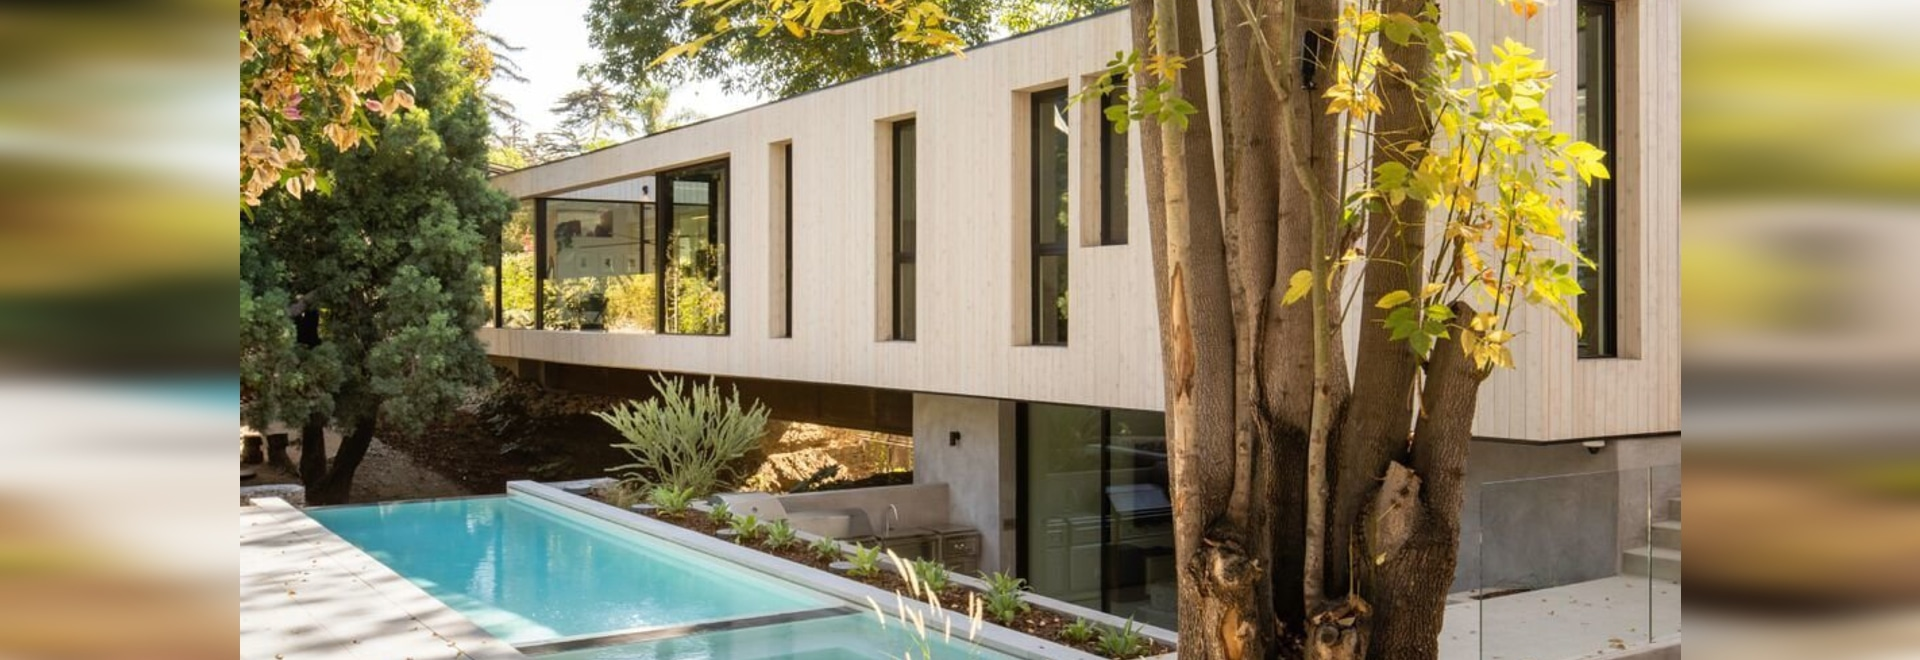 Taking advantage of the temperate California climate, Bridge House embraces indoor-outdoor living to the fullest. Several outdoor living and entertaining zones have been incorporated, while the lar...